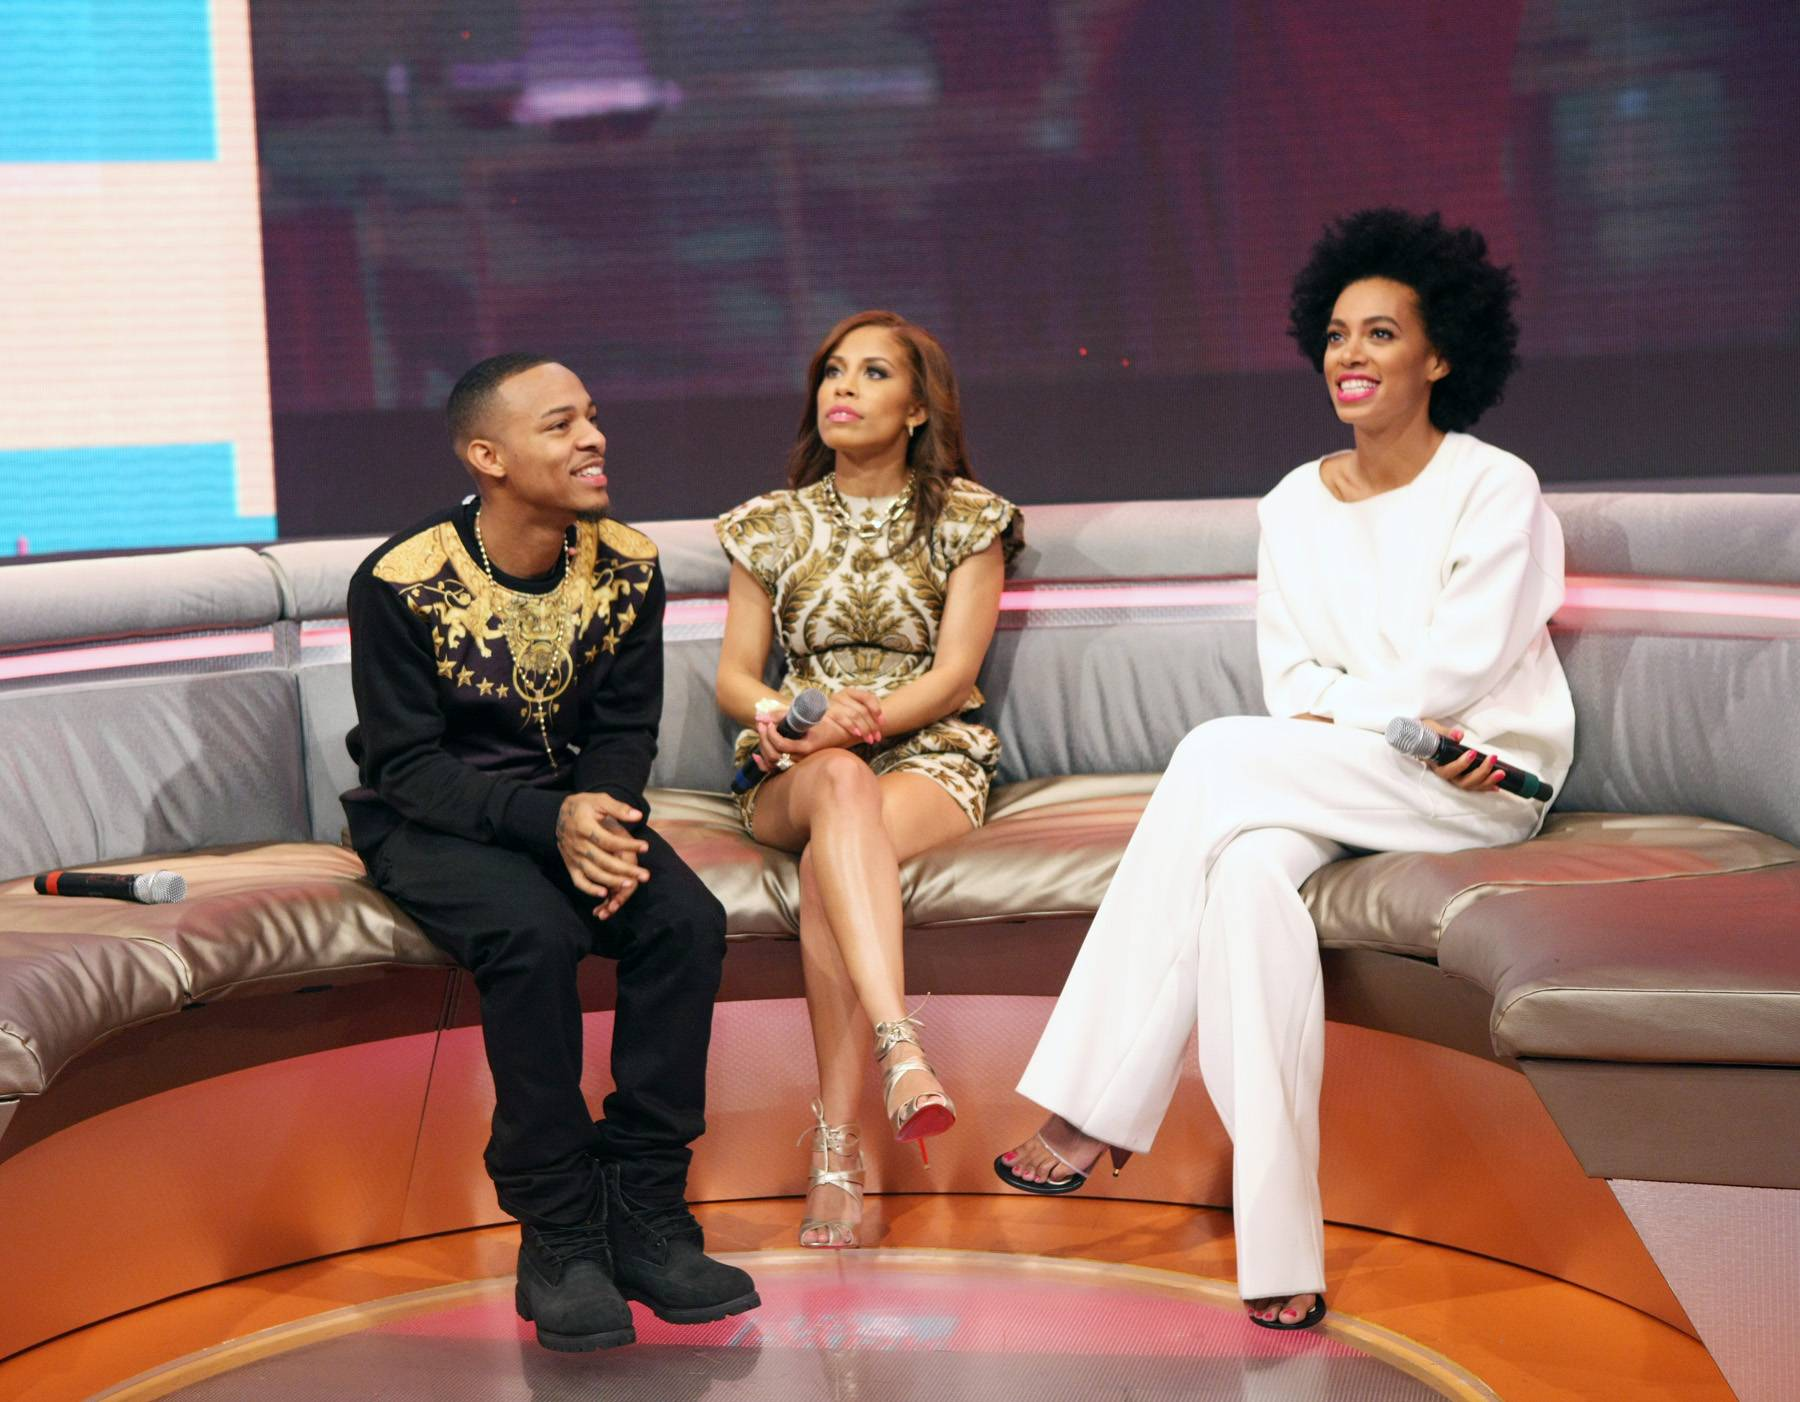 Good Vibes - Bow Wow, Keshia Chante and Solange Knowles all get acquainted while on the 106 stage.(Photo: Bennett Raglin/BET/Getty Images for BET)